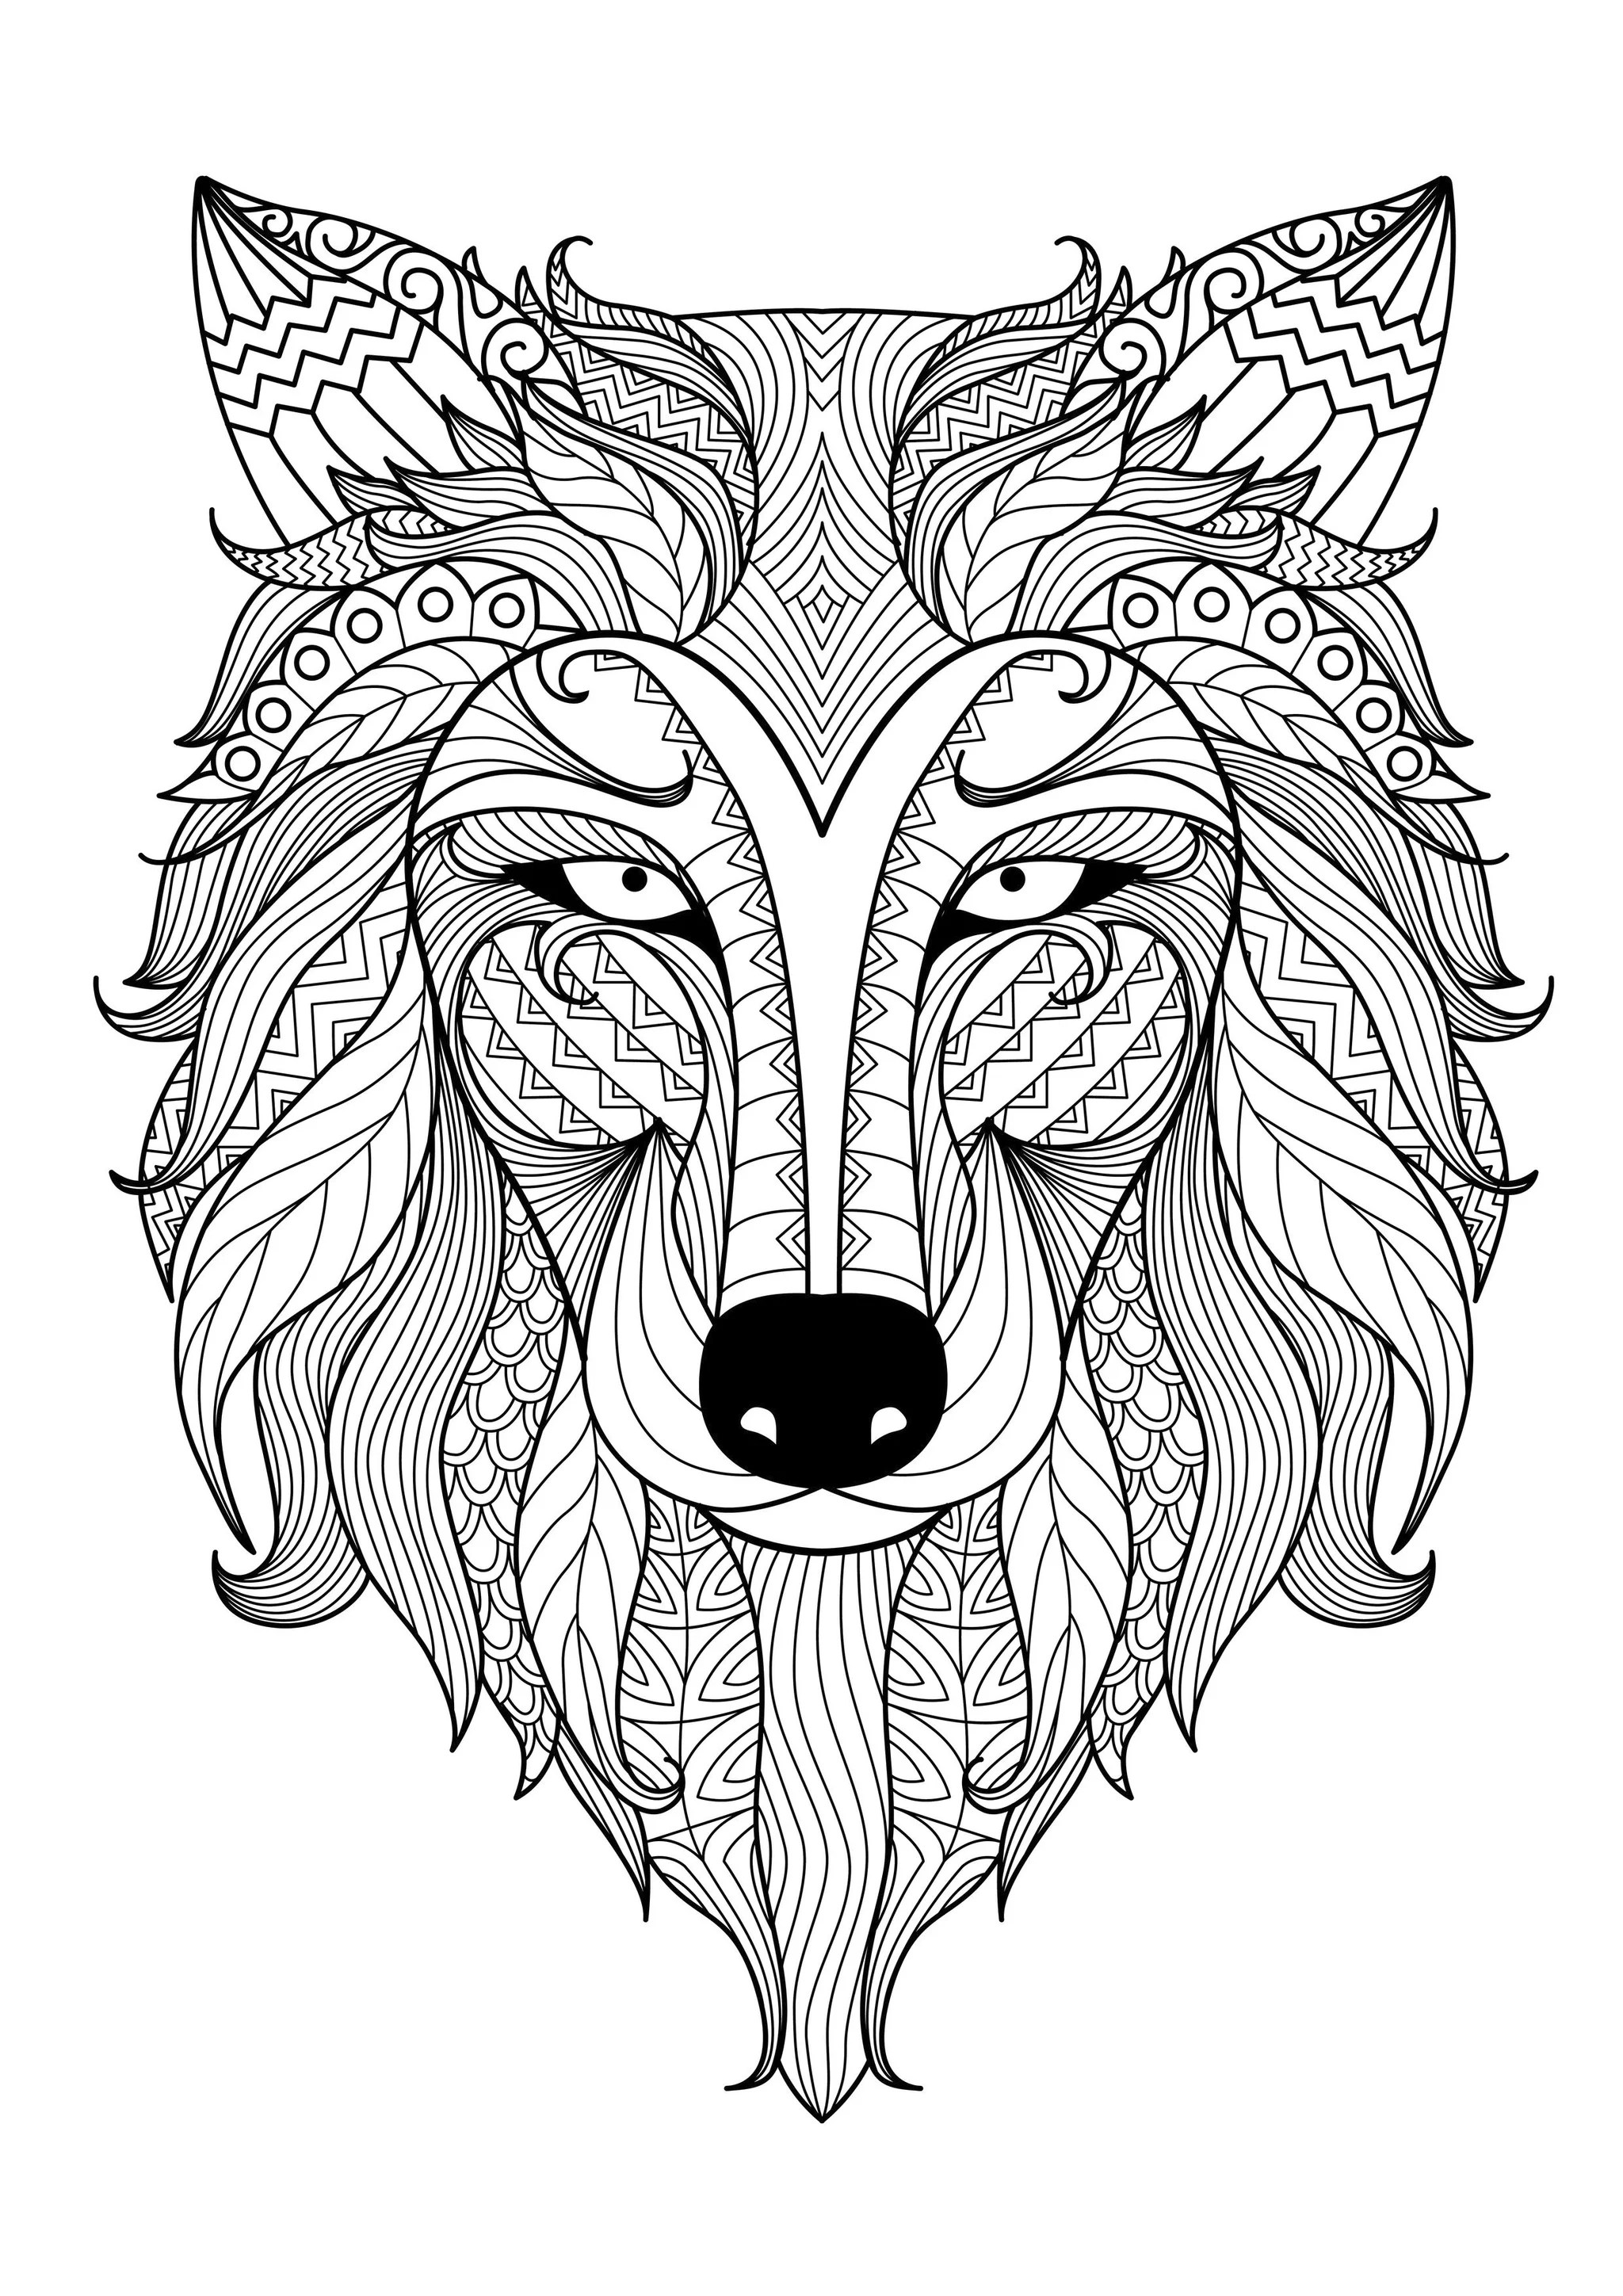 Coloring Pages For Adults Wolf : coloring, pages, adults, Coloring, Page:, Printable, Adult, Pages, De-Stress, POPSUGAR, Smart, Living, Photo